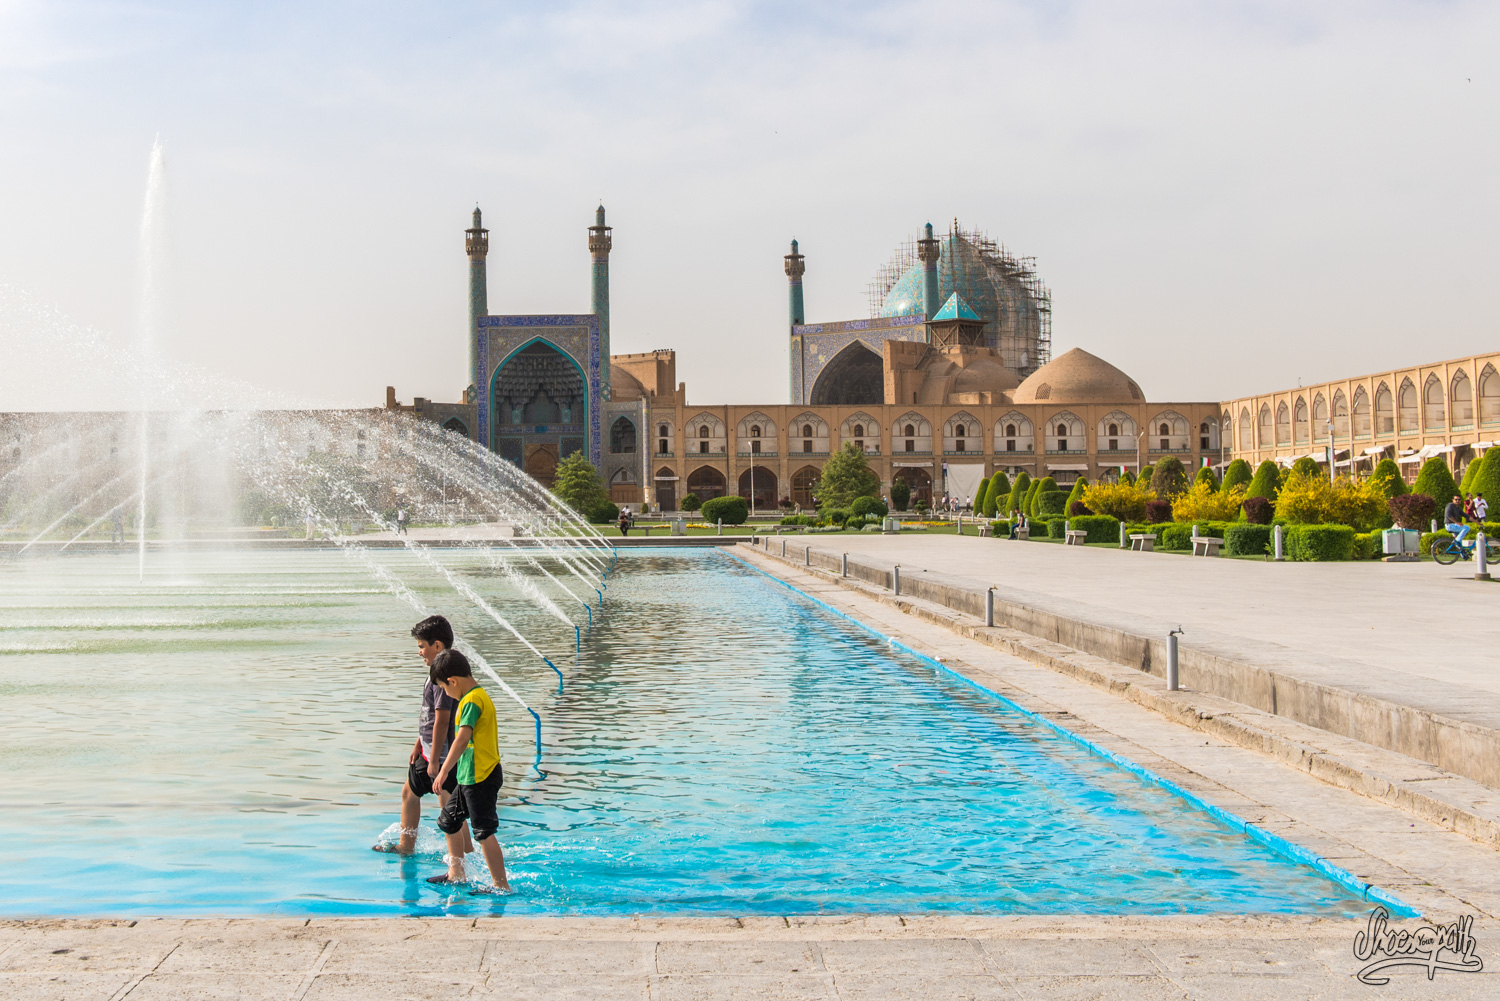 Kids playing in the fountain of Naqsh-e-jahan square